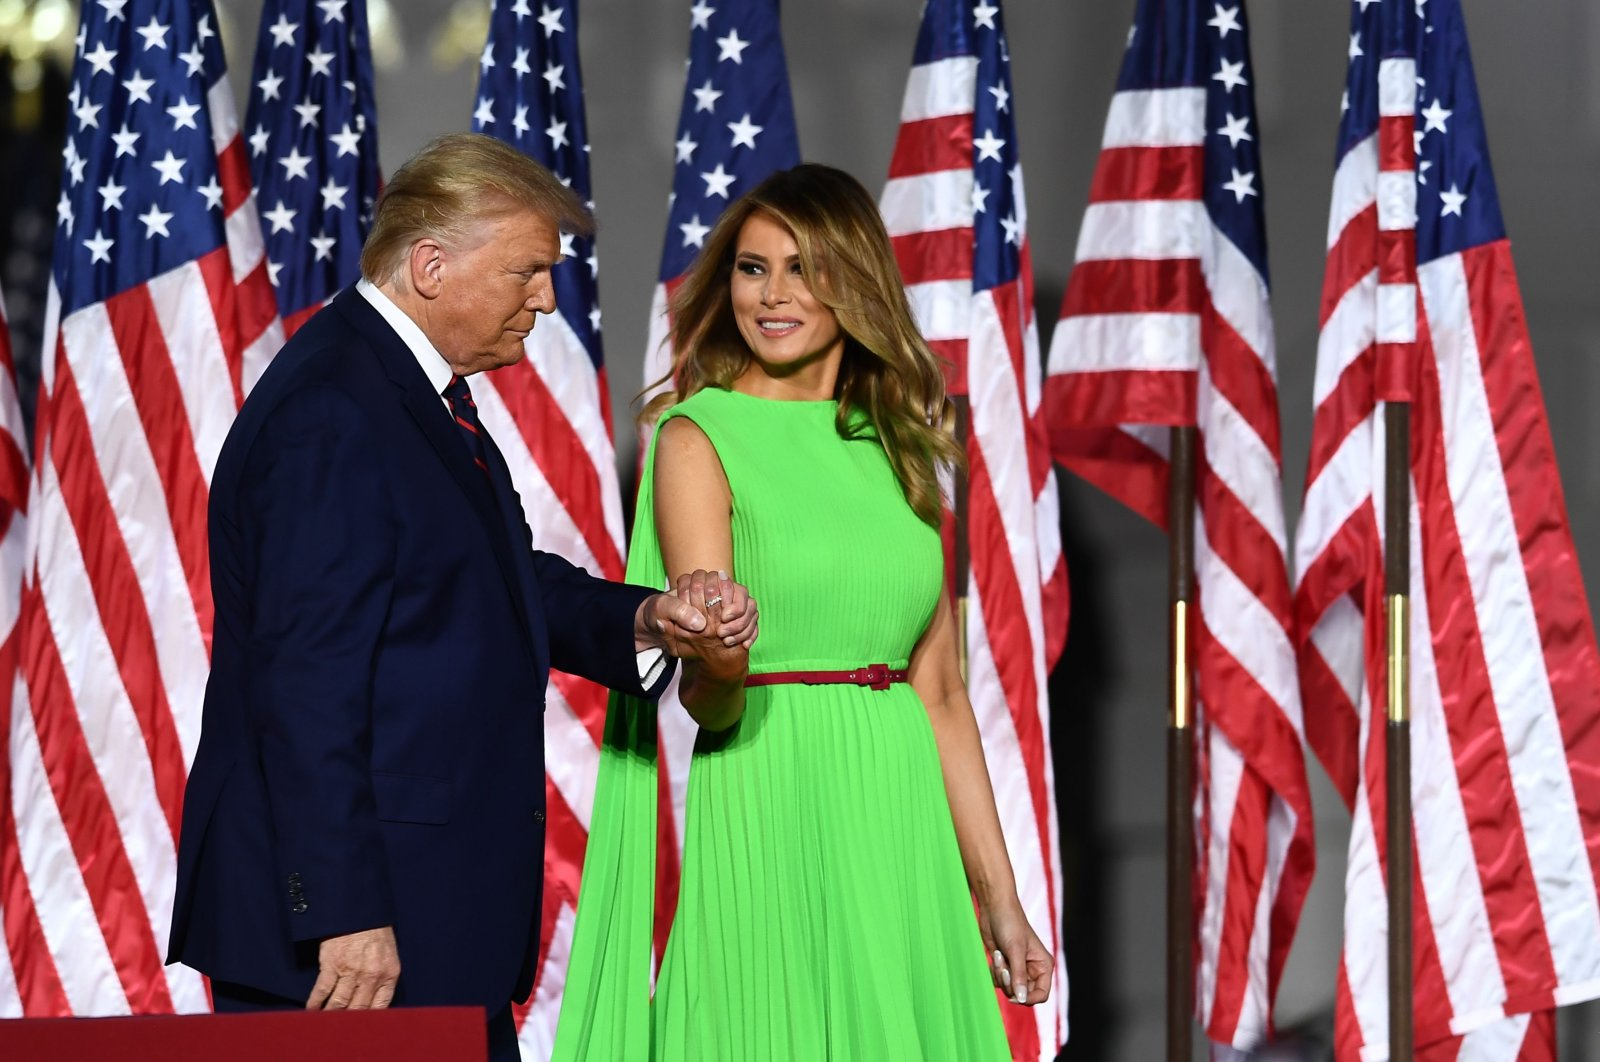 U.S. President Donald Trump (L) arrives with wife First Lady Melania Trump to deliver his acceptance speech for the Republican Party nomination for reelection during the final day of the Republican National Convention from the South Lawn of the White House in Washington, D.C, Aug.27, 2020. (AFP Photo)